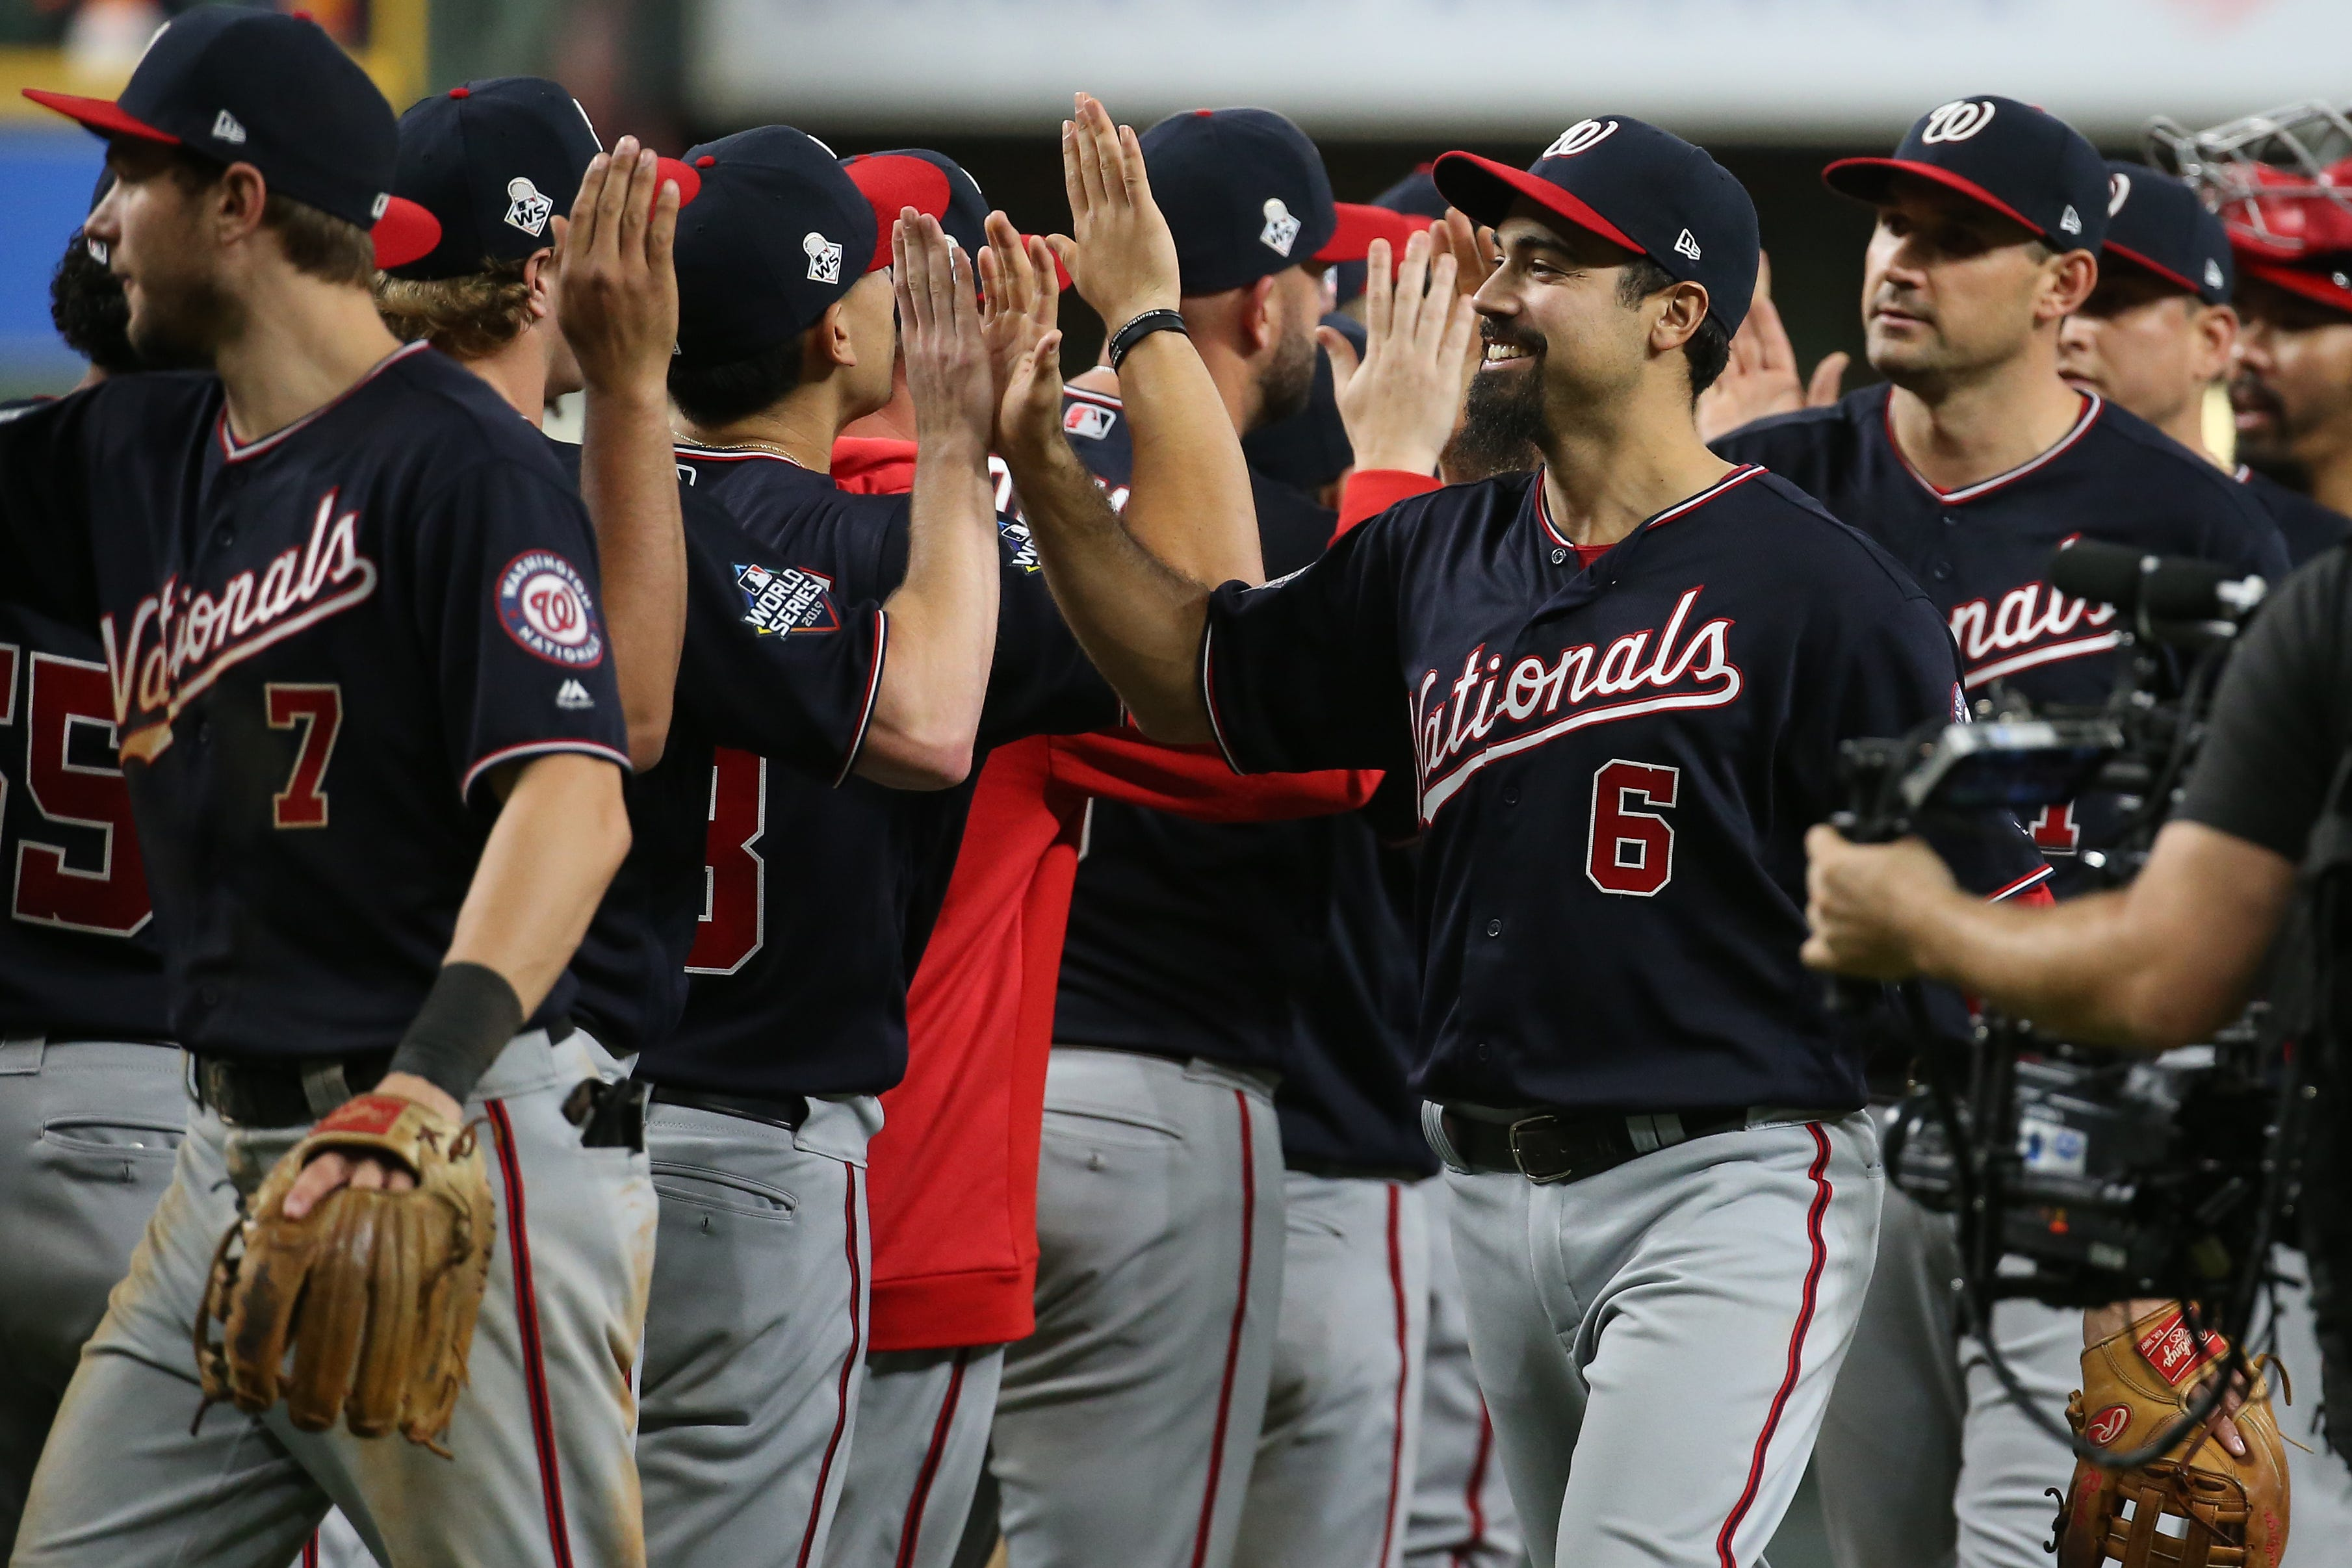 How the Nats Flipped the Script